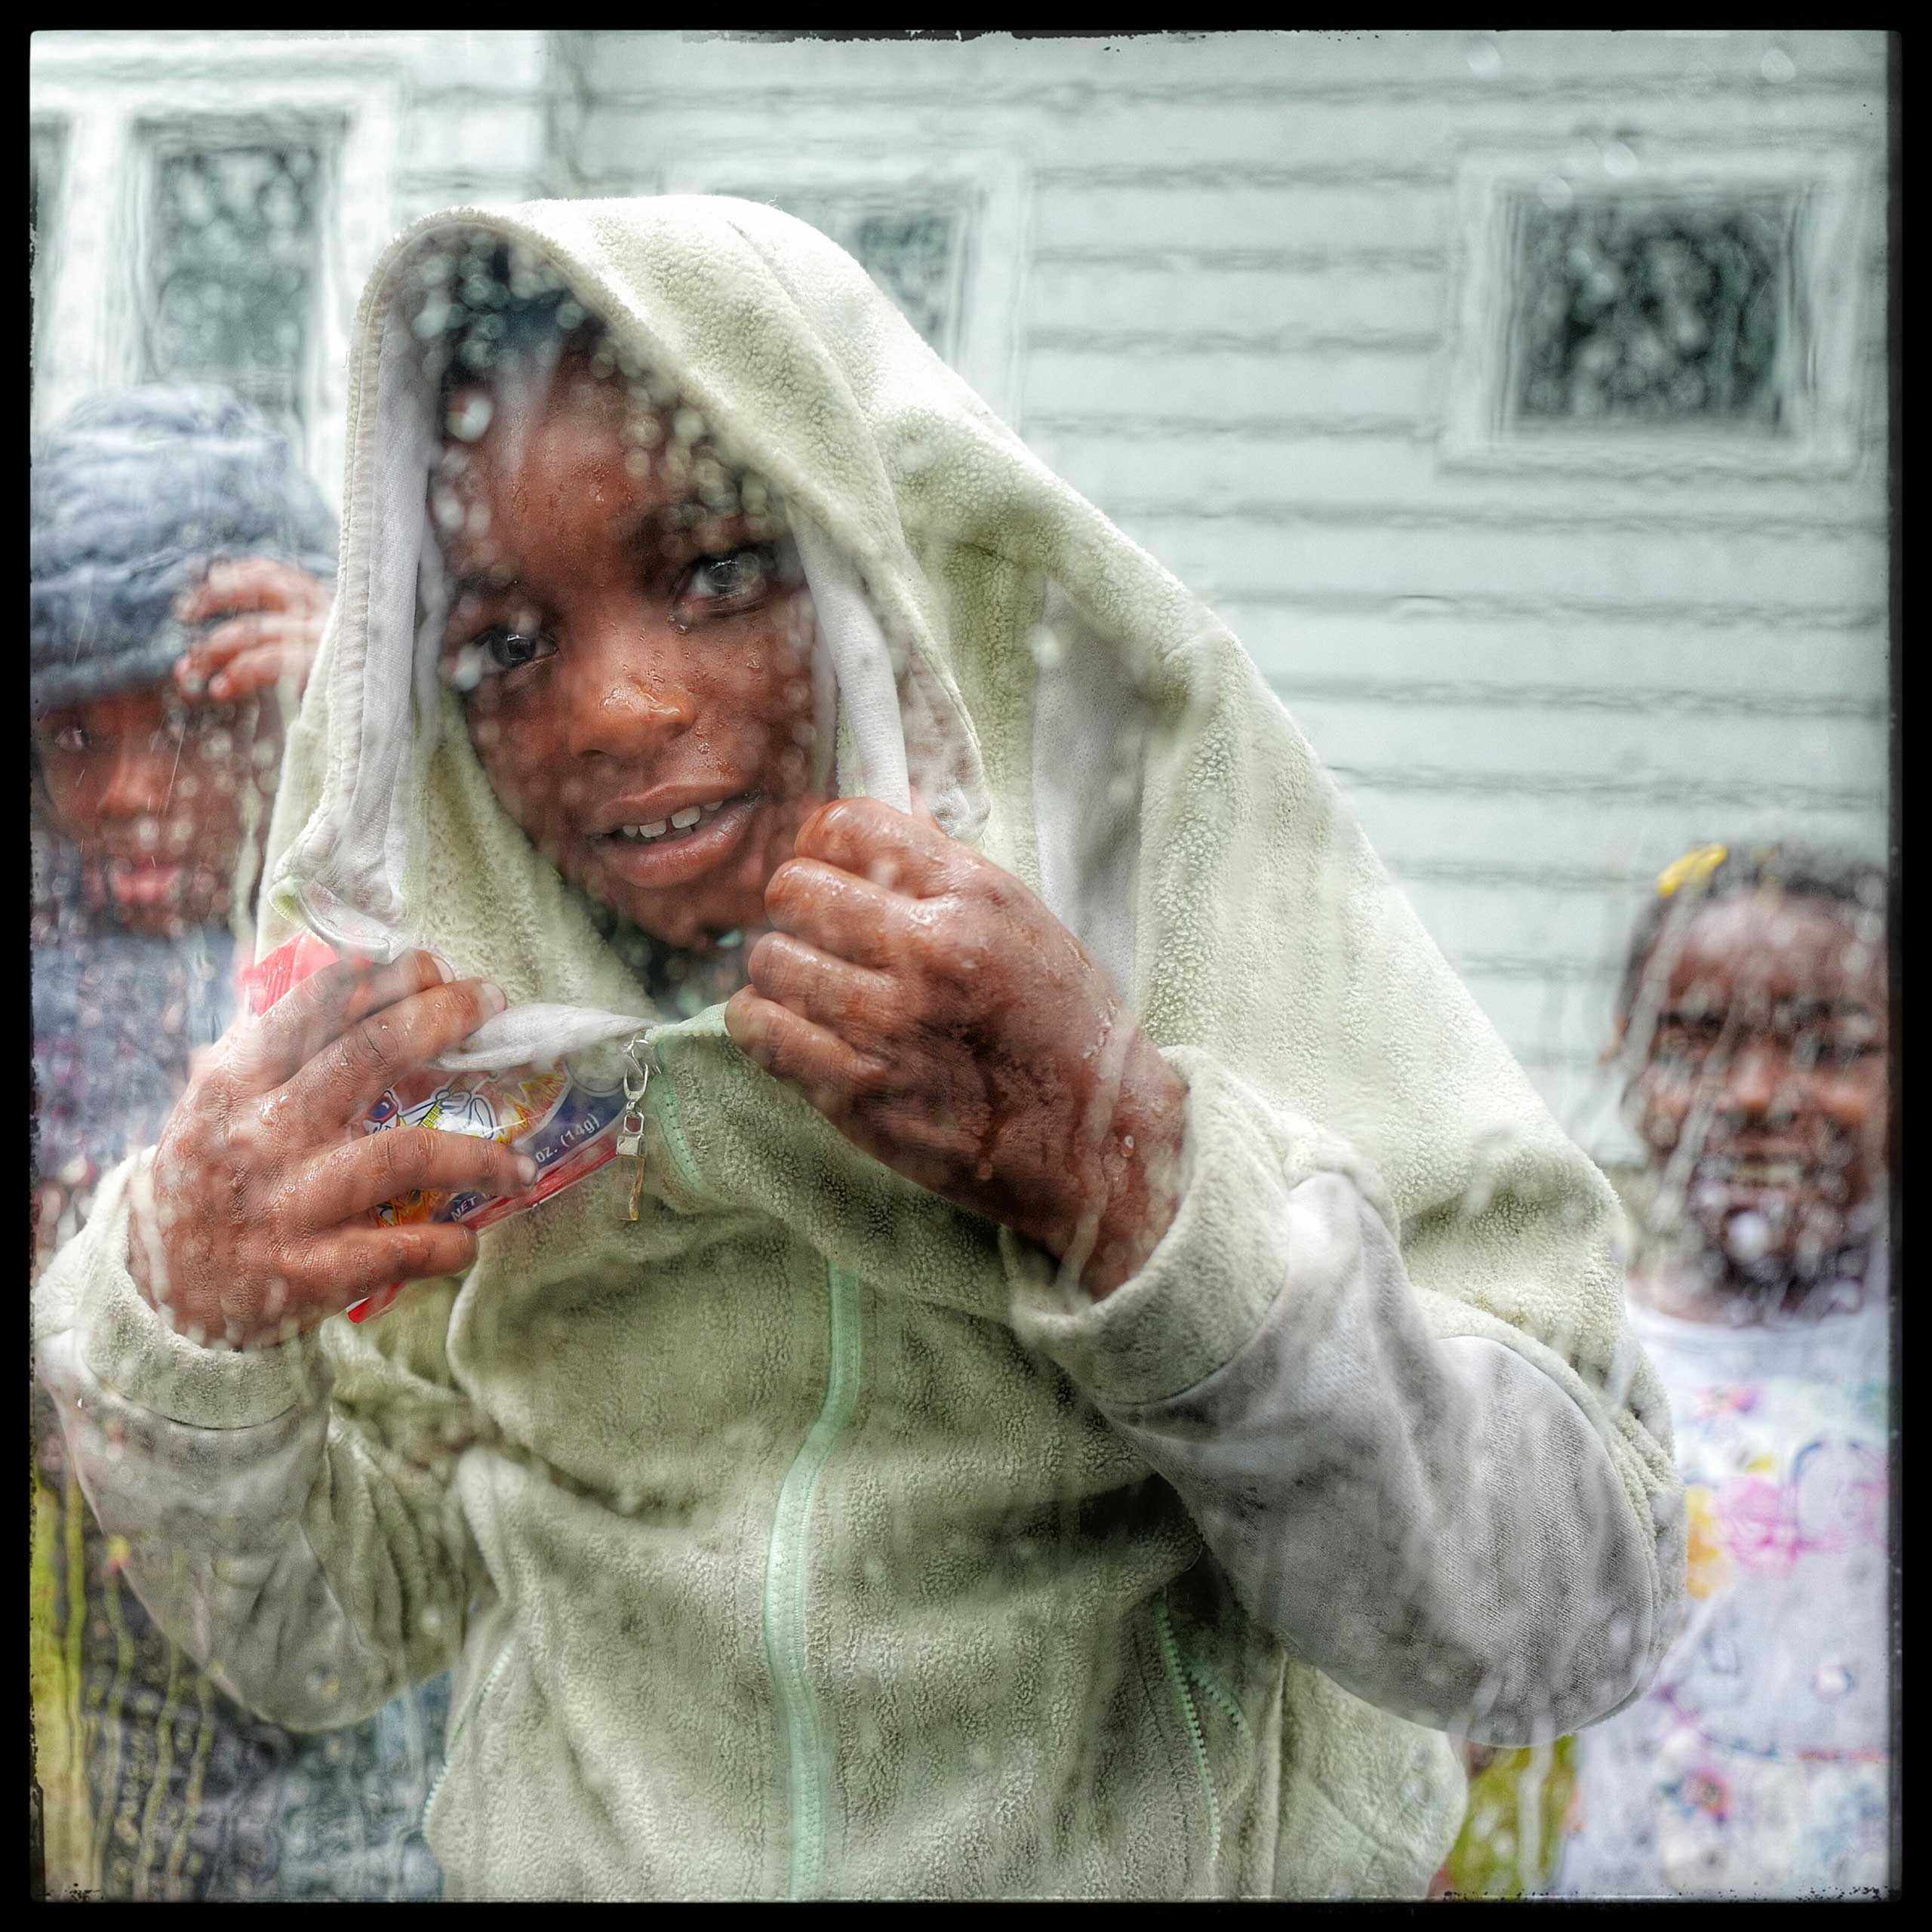 Children in Milwaukee, Winsconsin runs up to the car window to inquire if there was anything to eat.